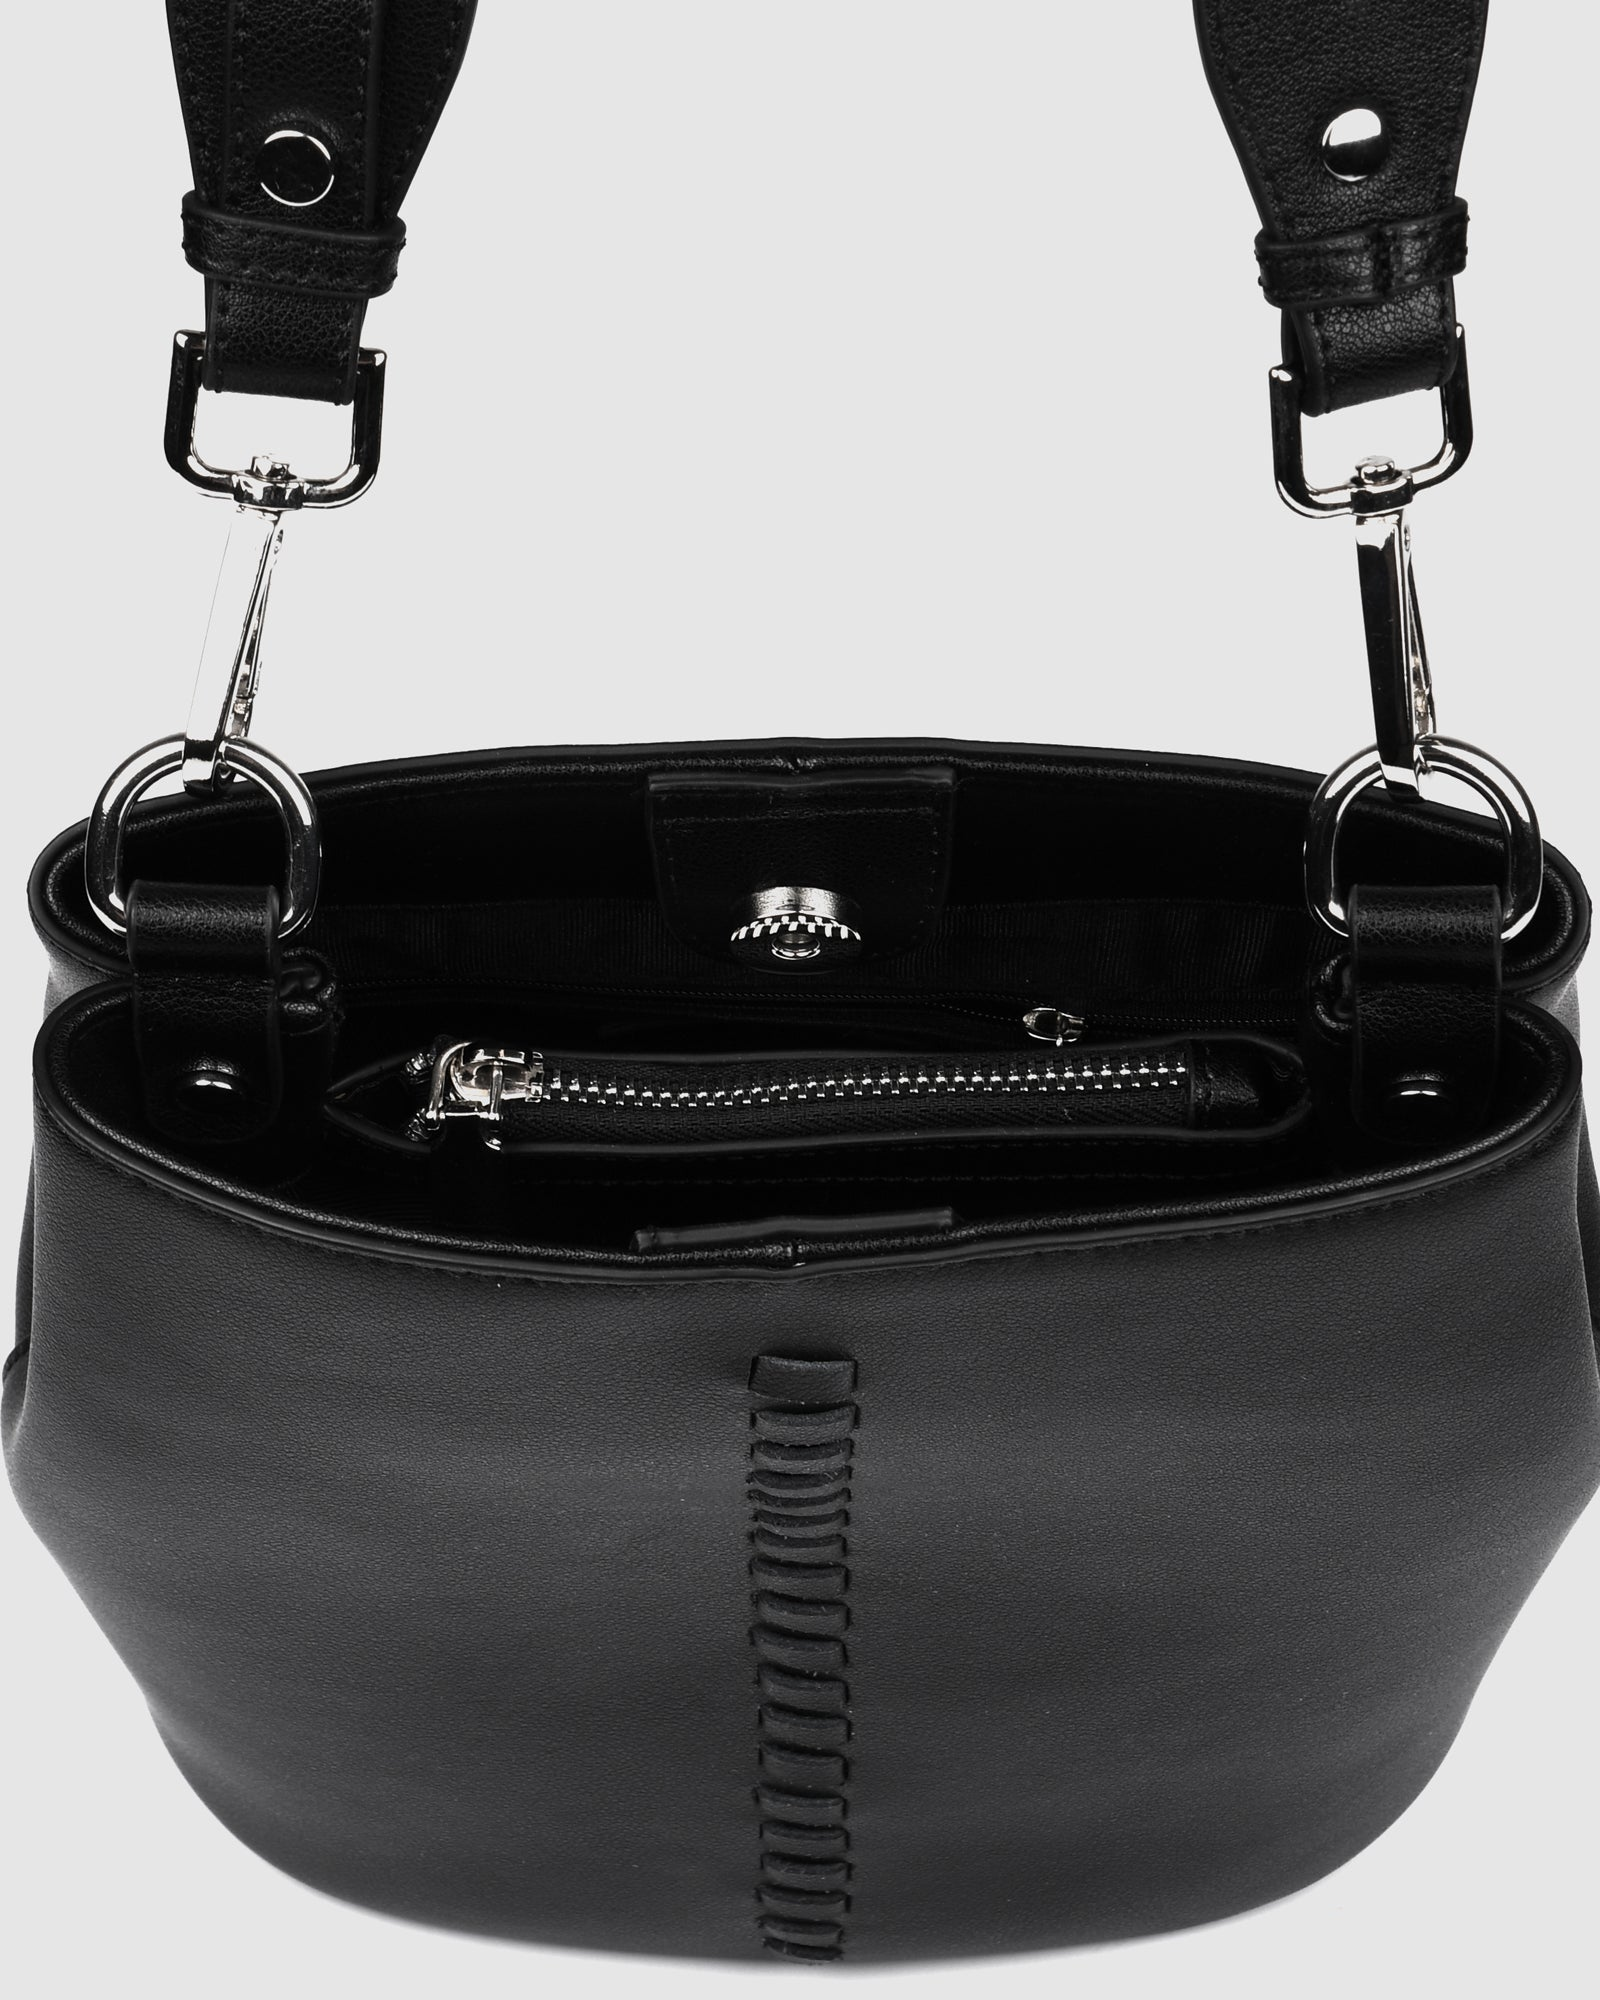 KEATON CROSS BODY BAG BLACK LEATHER